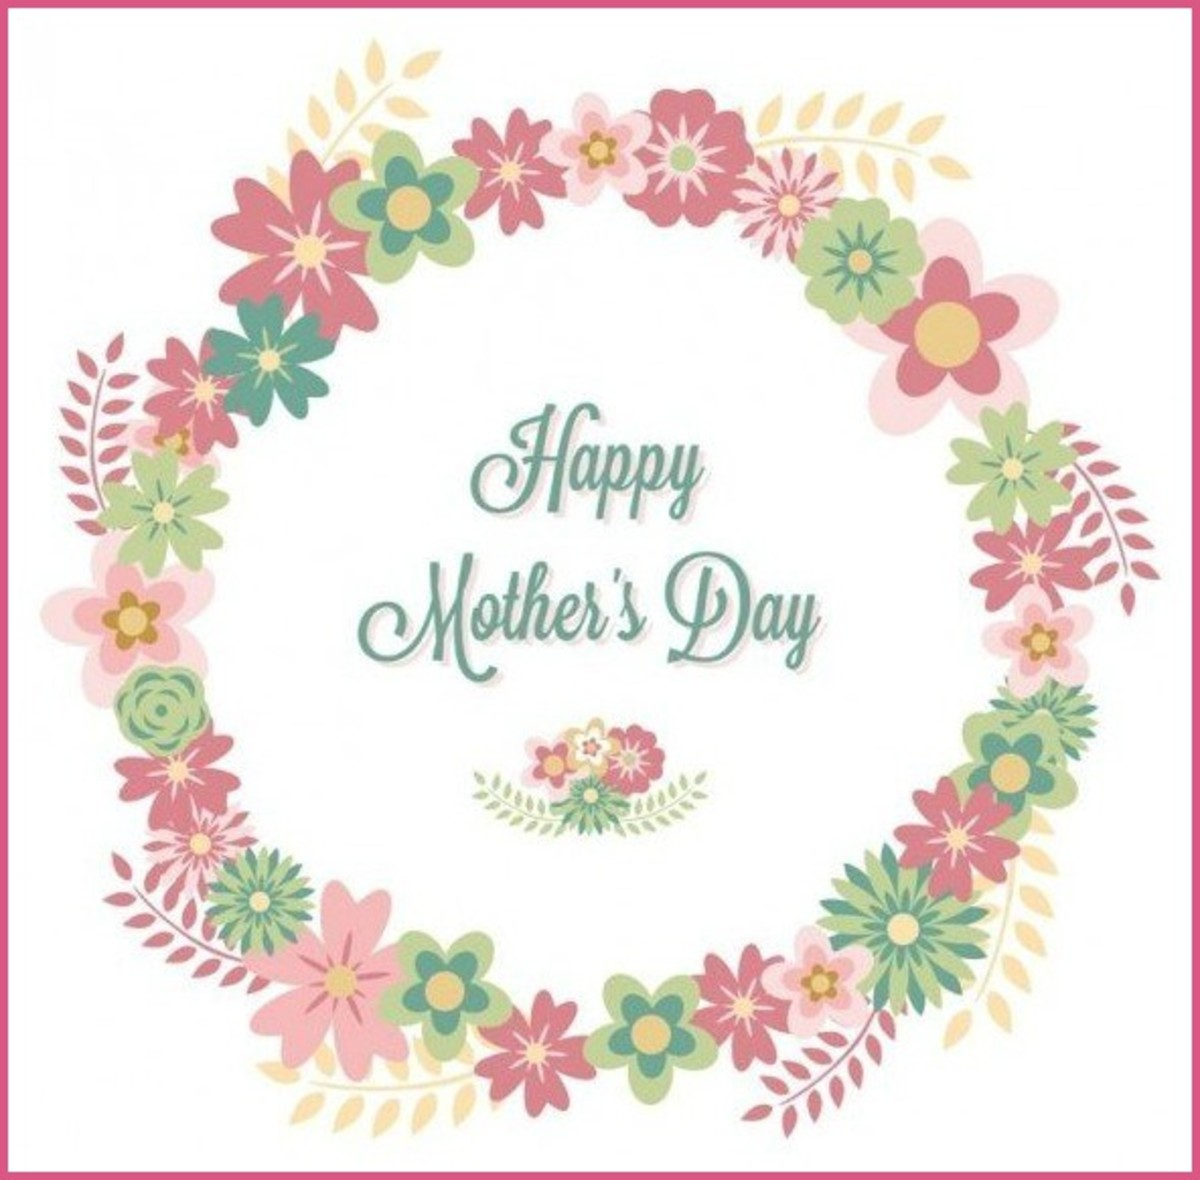 Happy Mother's Day Wreath of Flowers